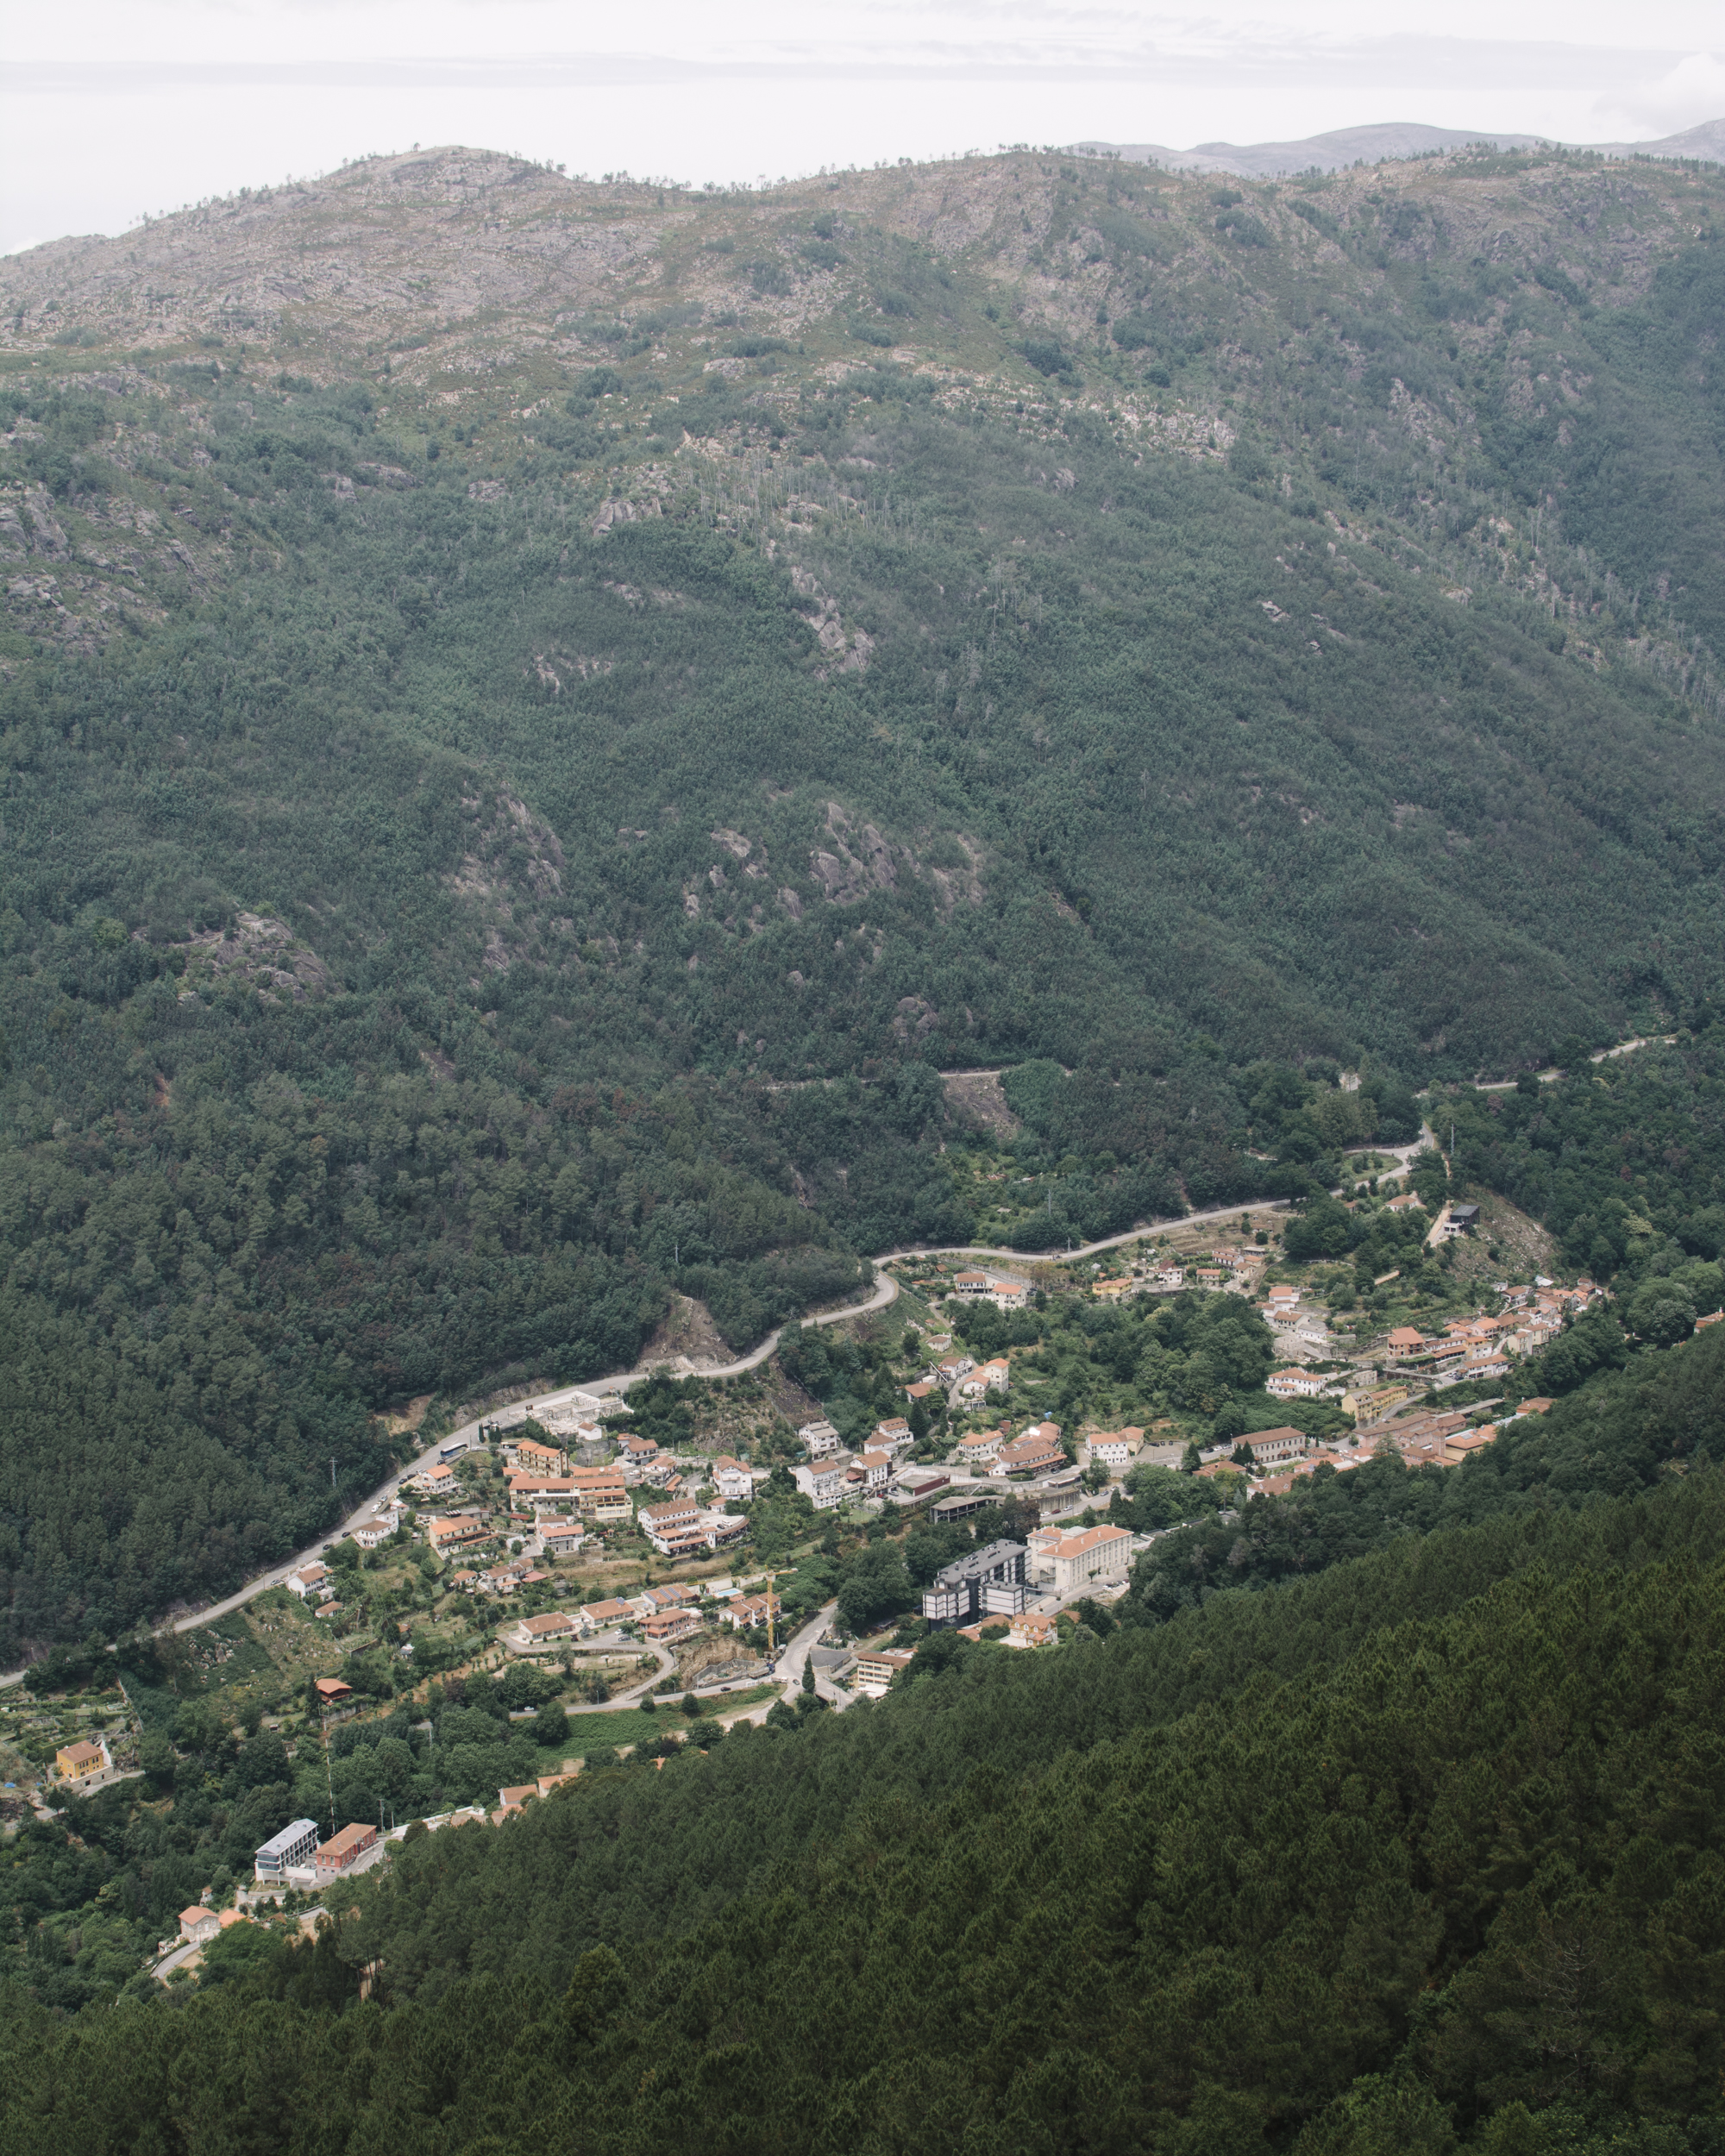 A typical cluster of houses amongst the vastness of the valley.